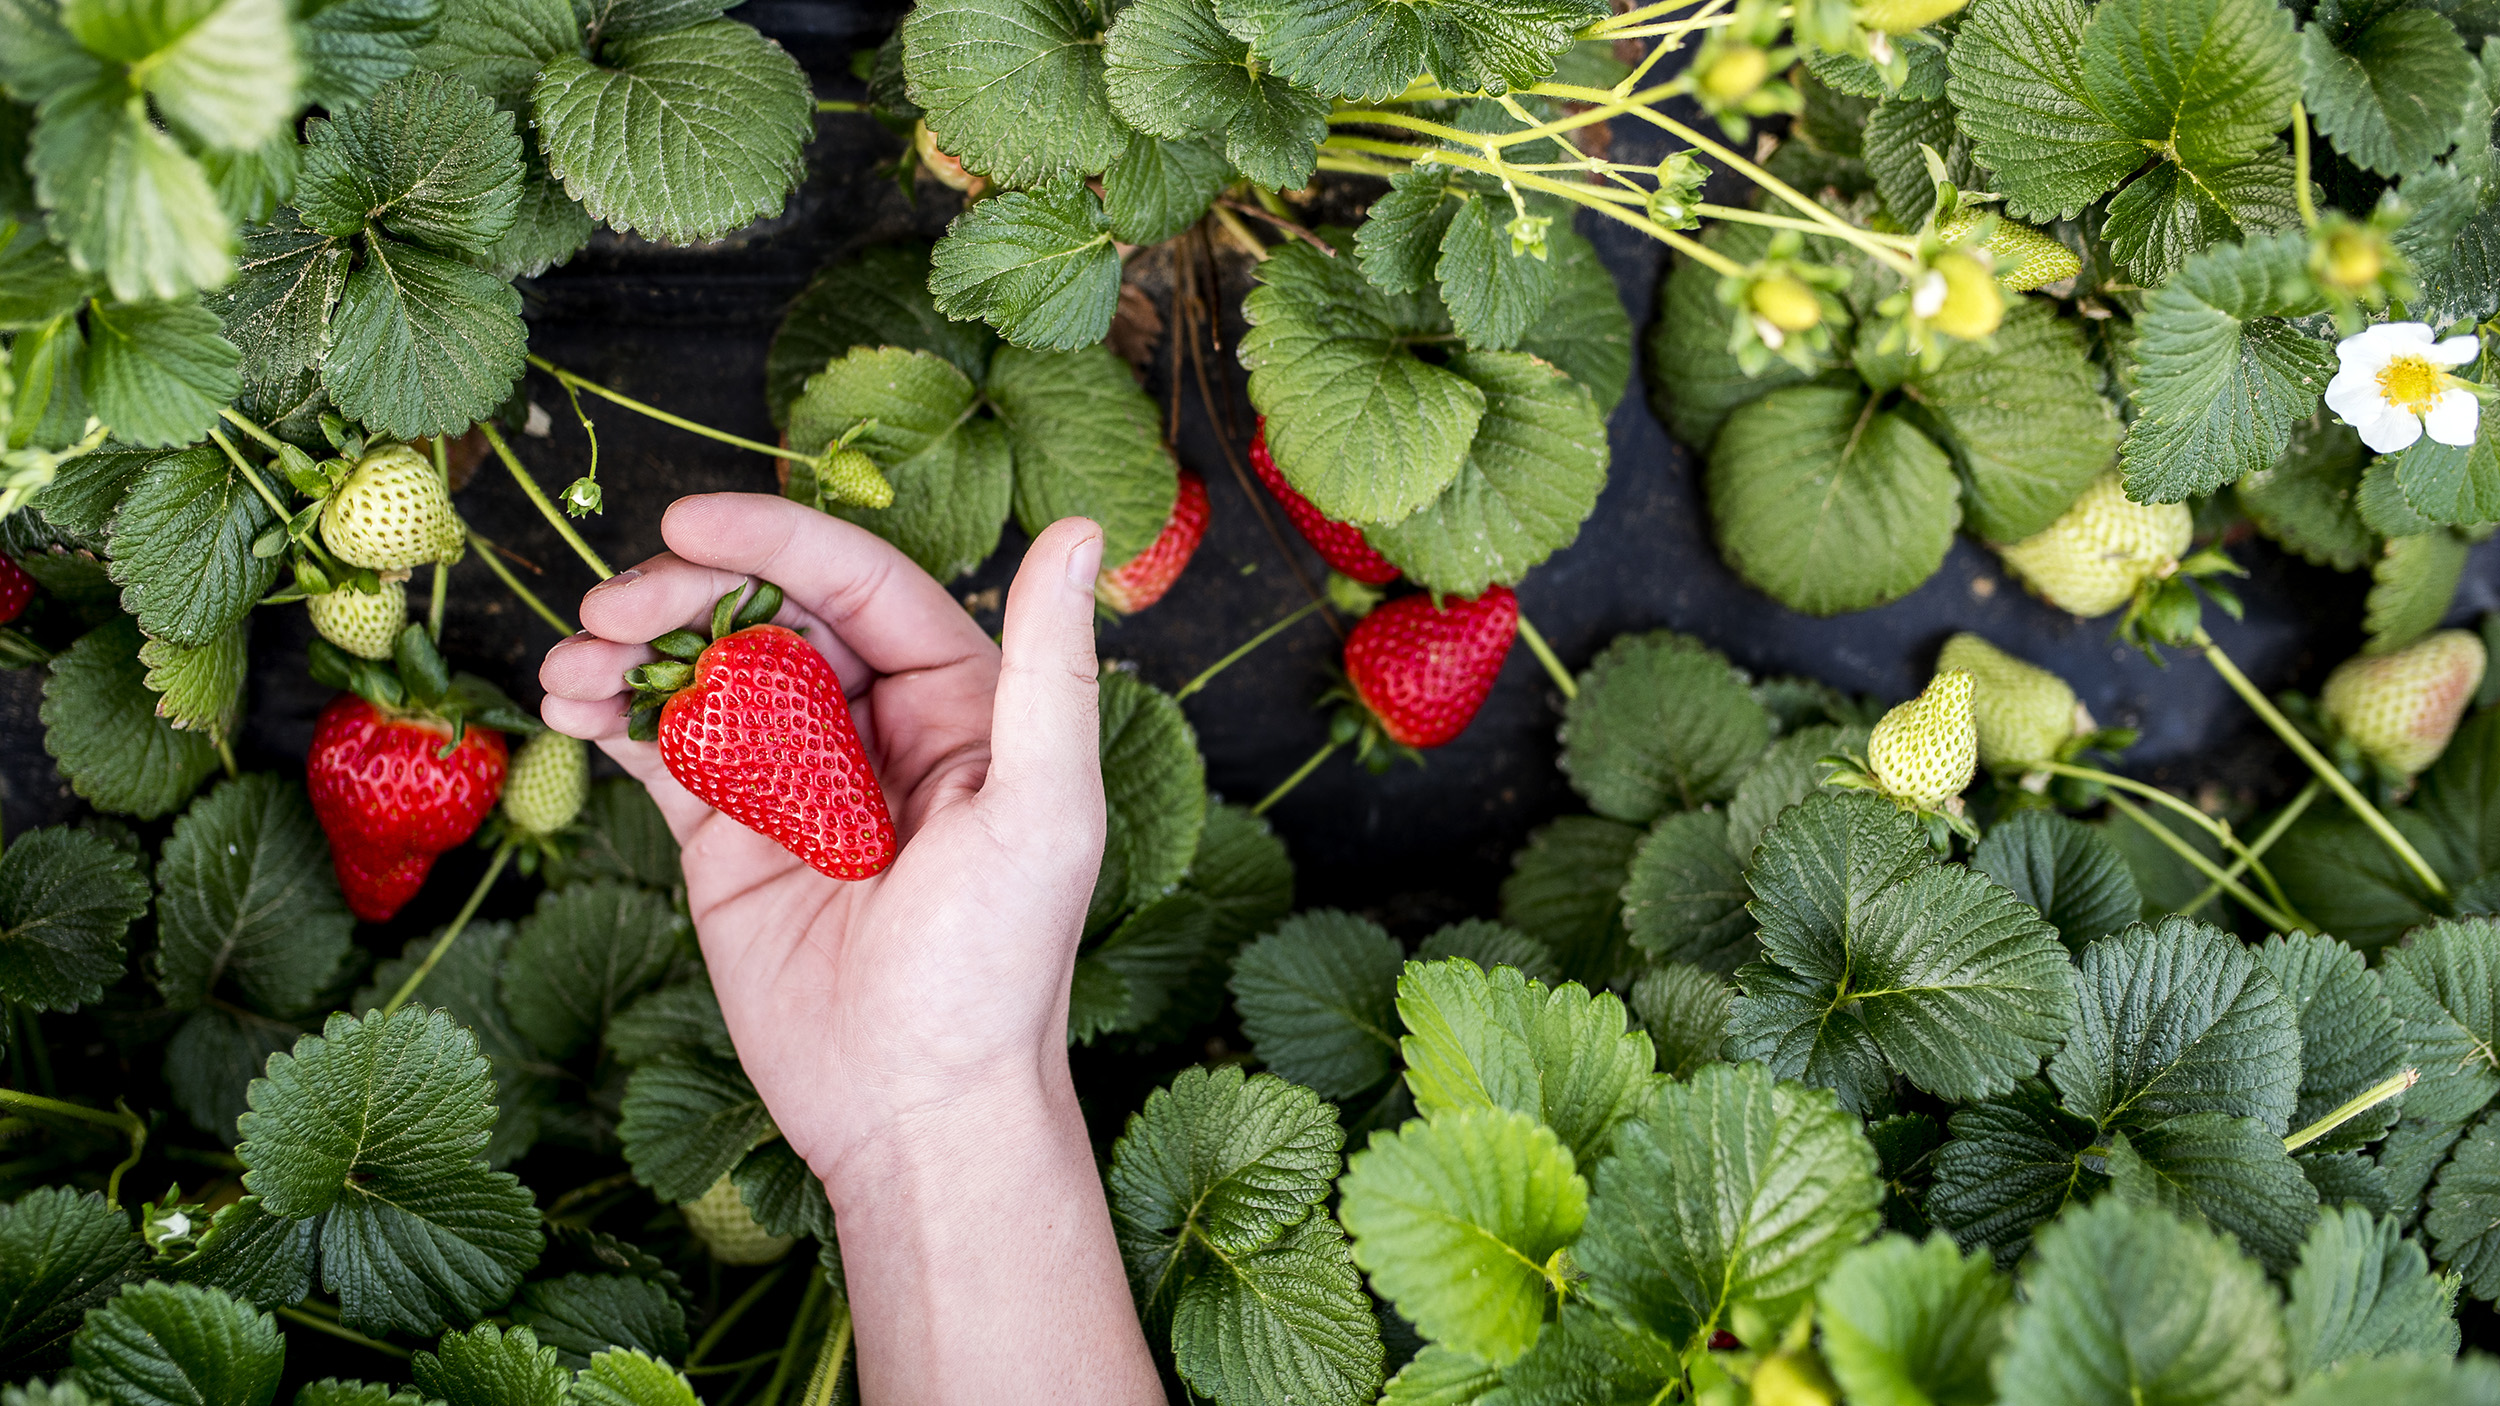 Direct from the field - Strawberries